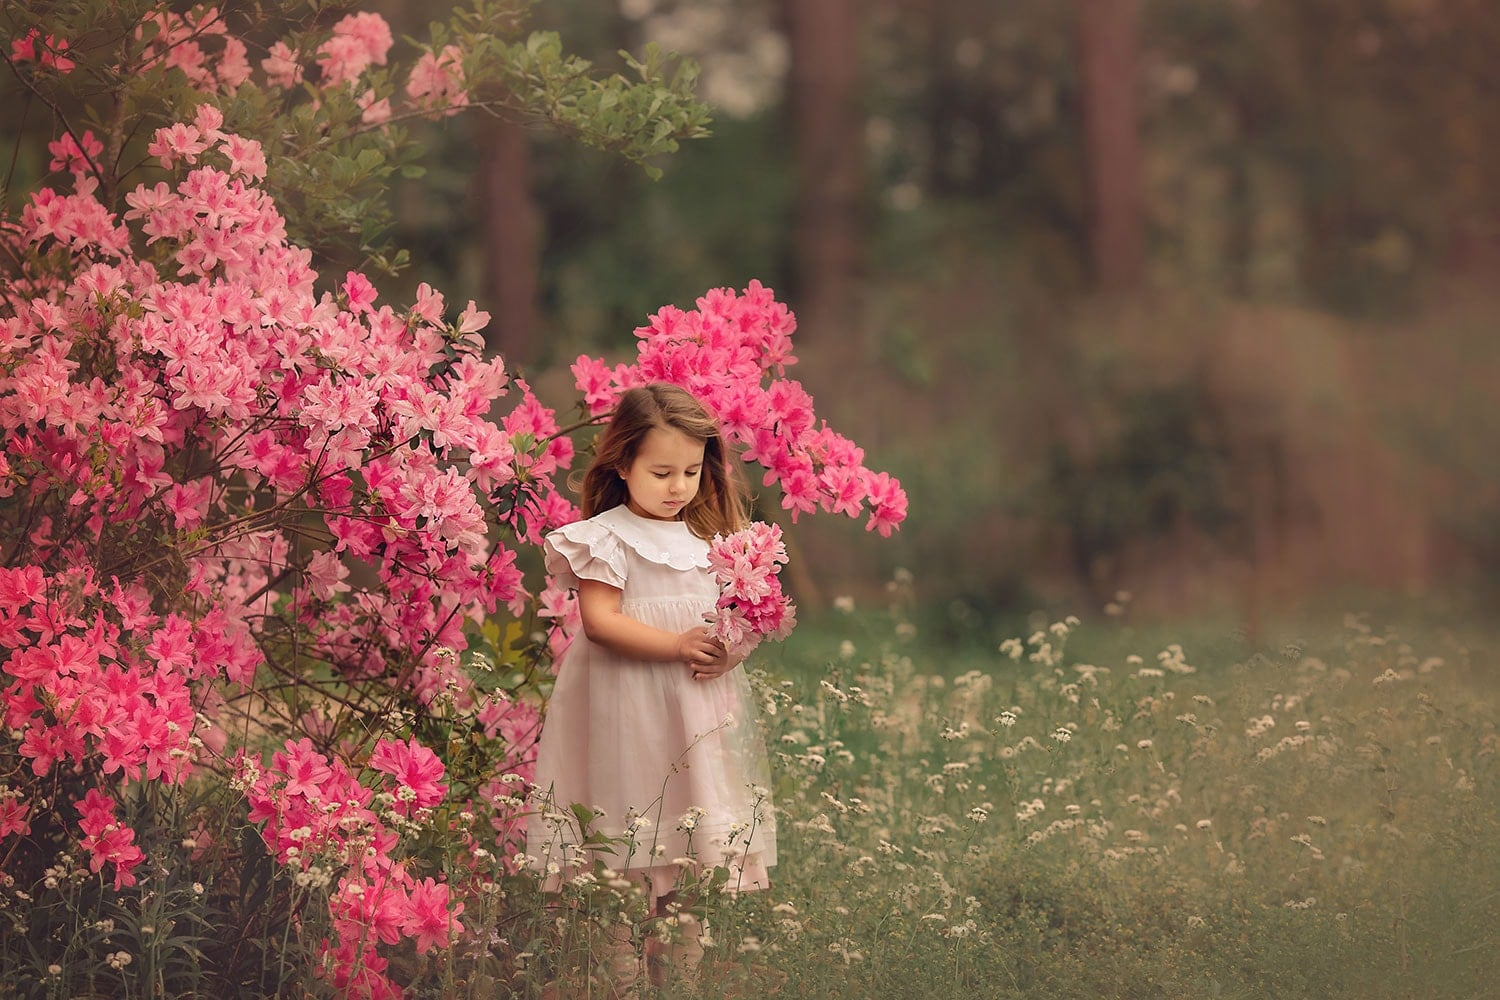 Stunning photo of four year old girl by blooming azalea bush